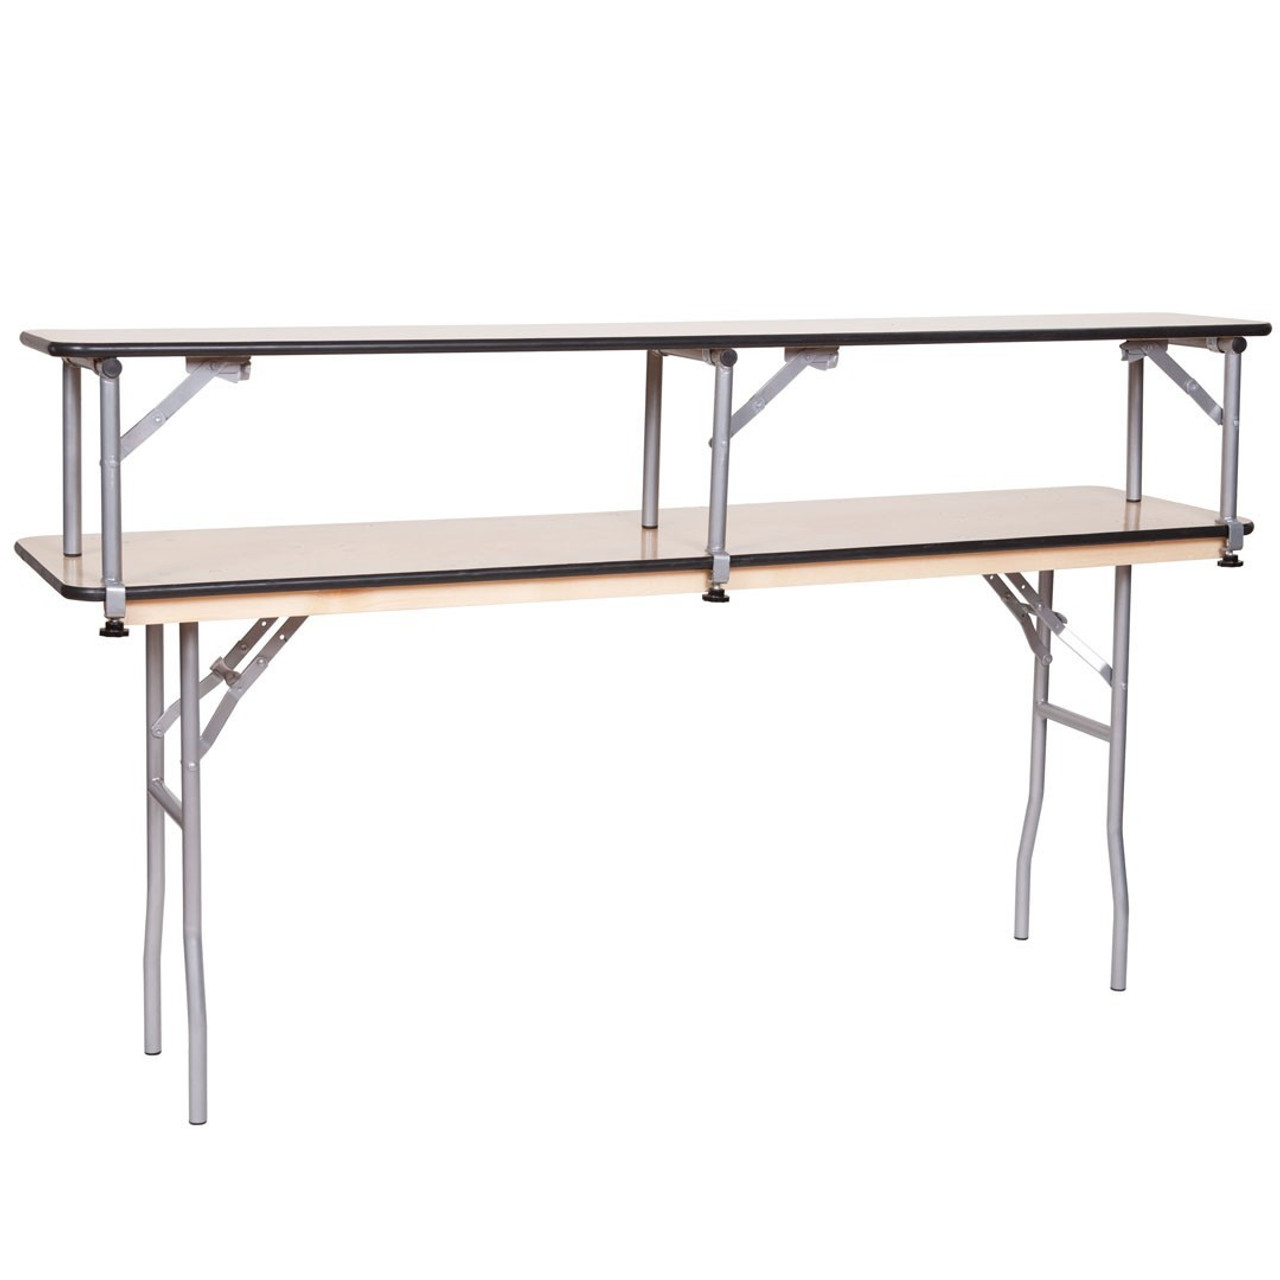 Exceptionnel ... Luan 8FT Portable Bar Top Riser Bundle   Includes Table, Riser,  Skirting, And ...